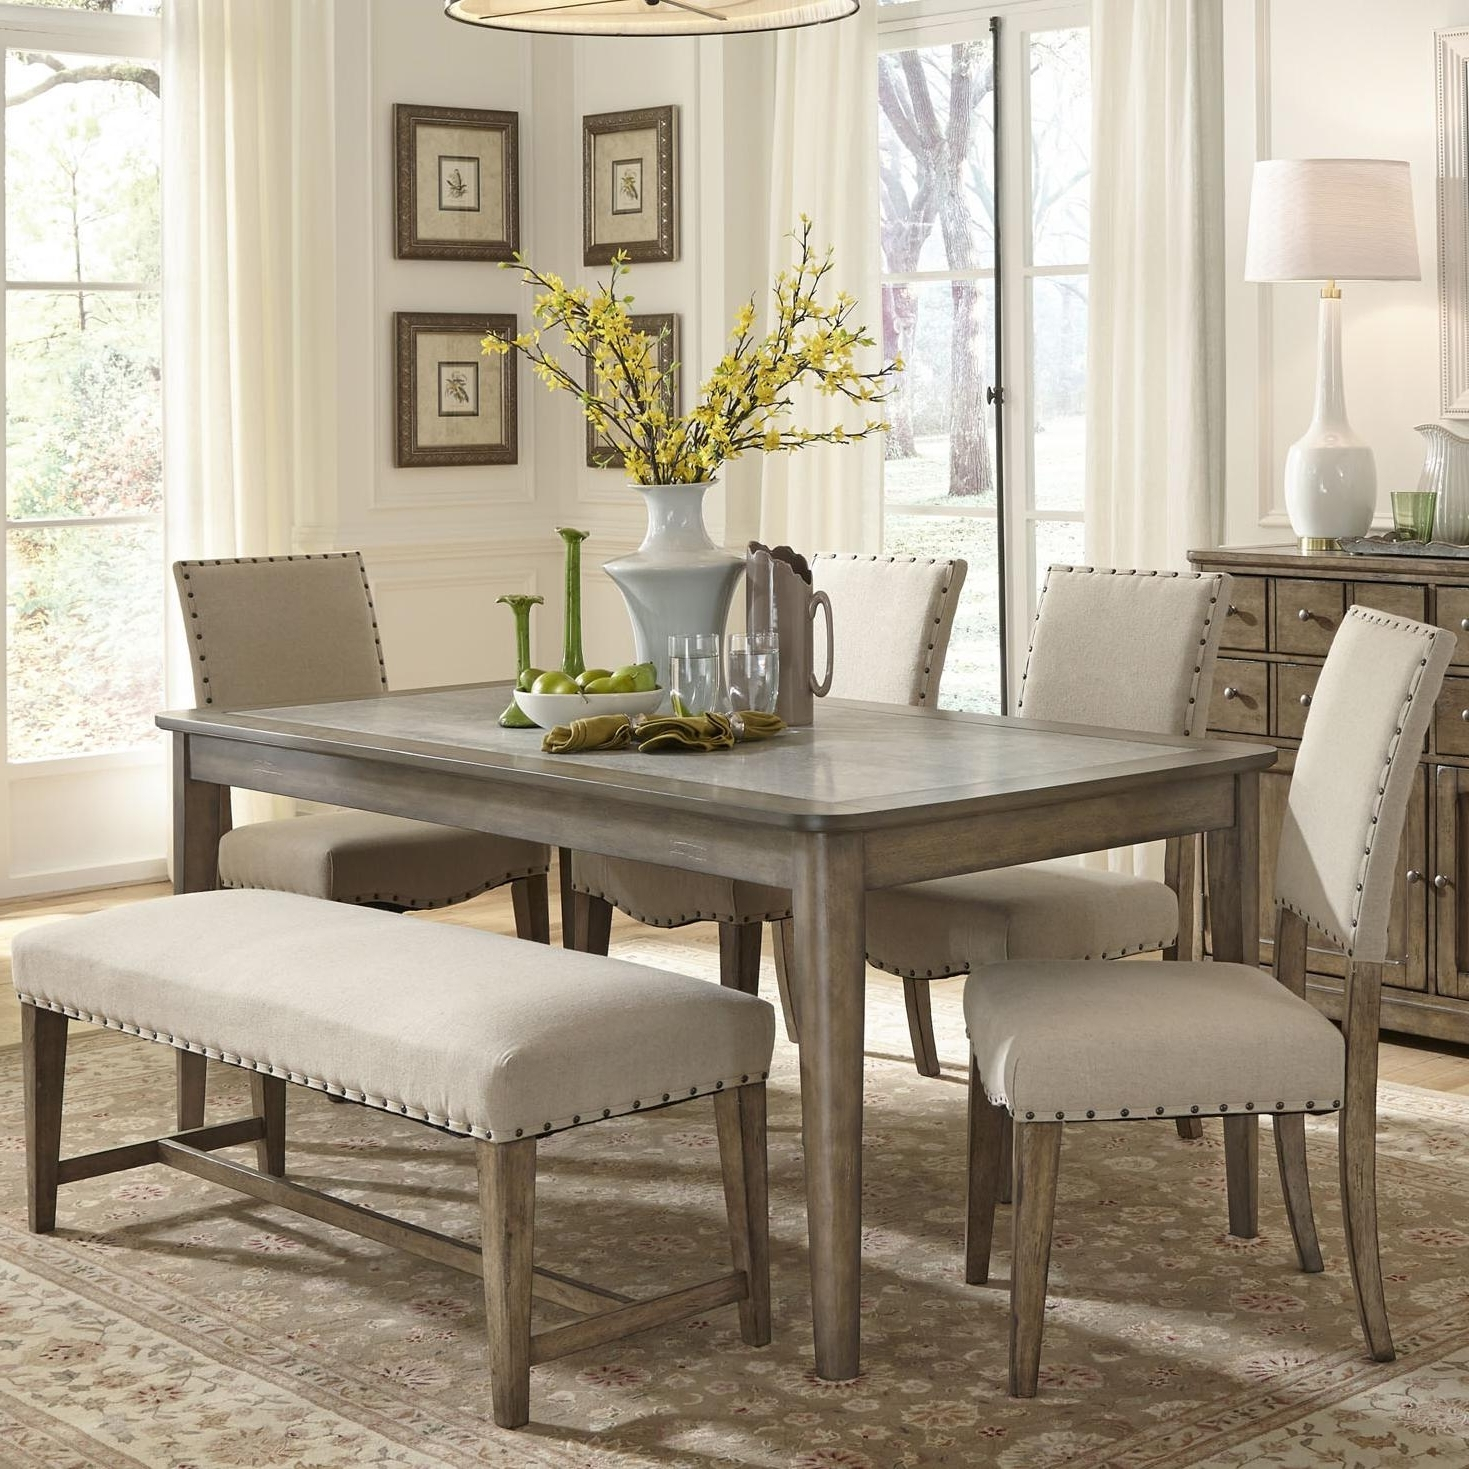 Current Caira 7 Piece Rectangular Dining Sets With Upholstered Side Chairs Within 57 Dining Table Set With 6 Chairs, Uhuru Furniture Collectibles (View 7 of 25)